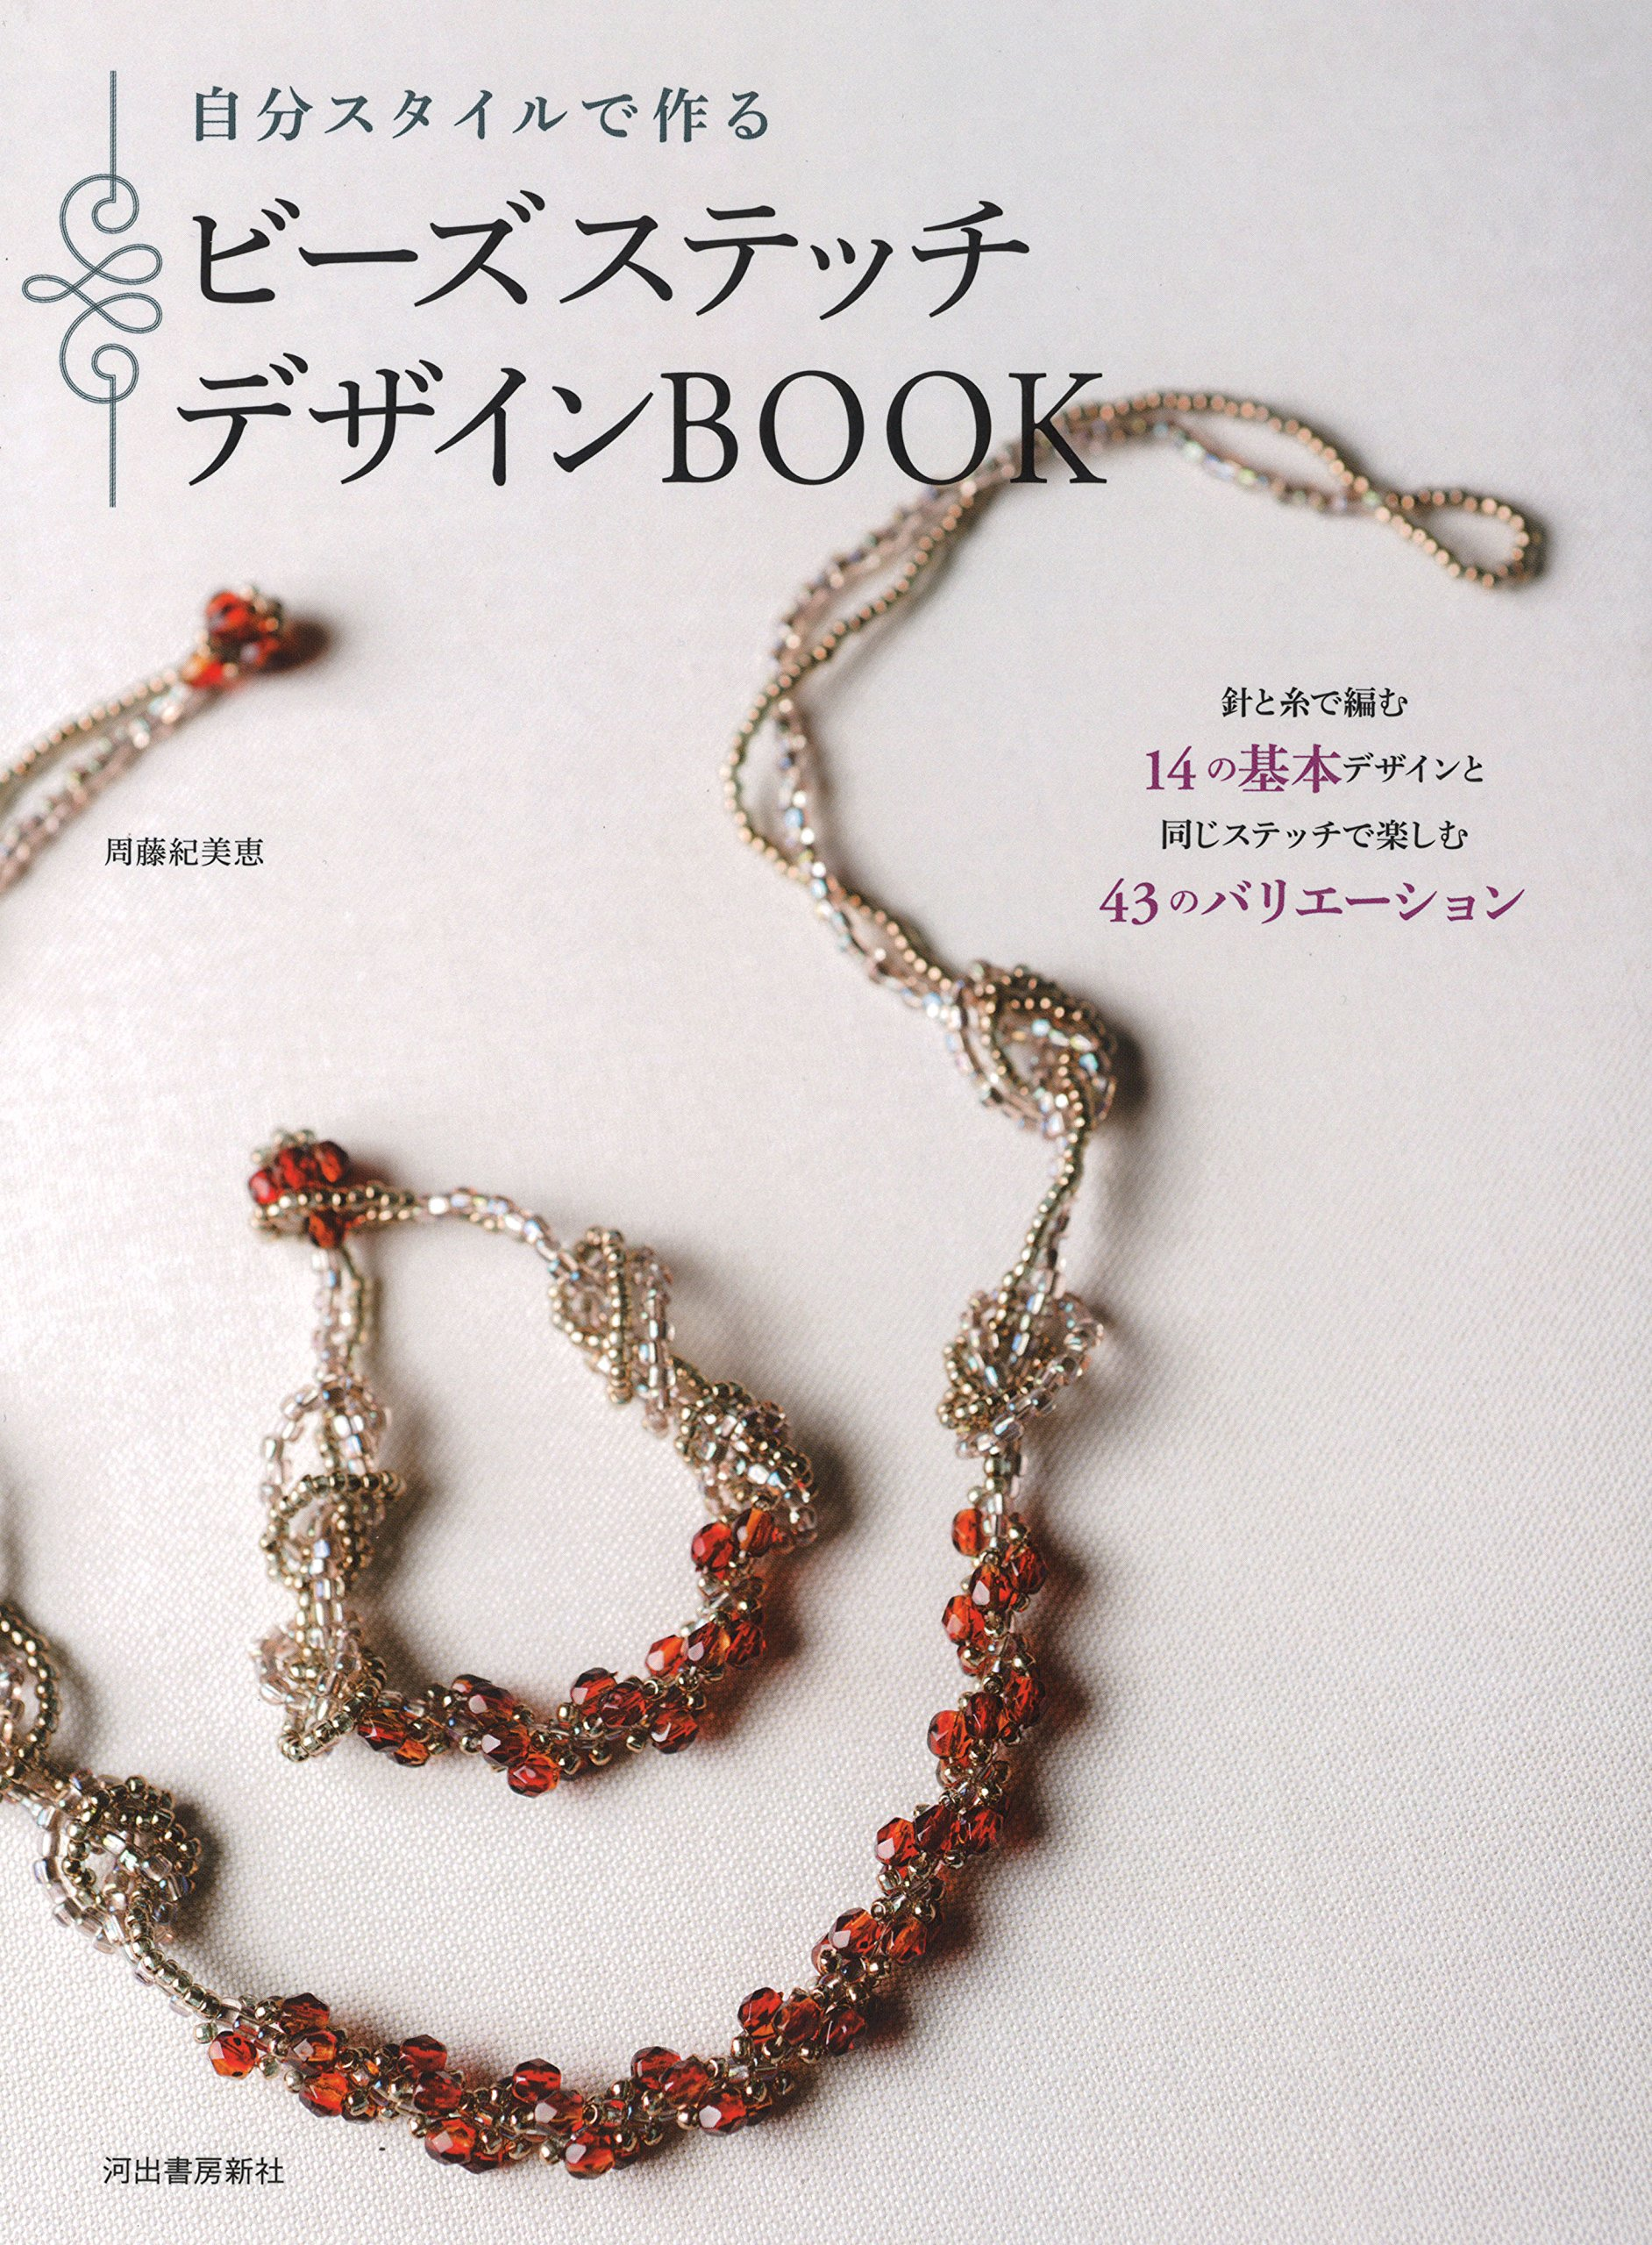 Beads stitch Design BOOK: make your own style